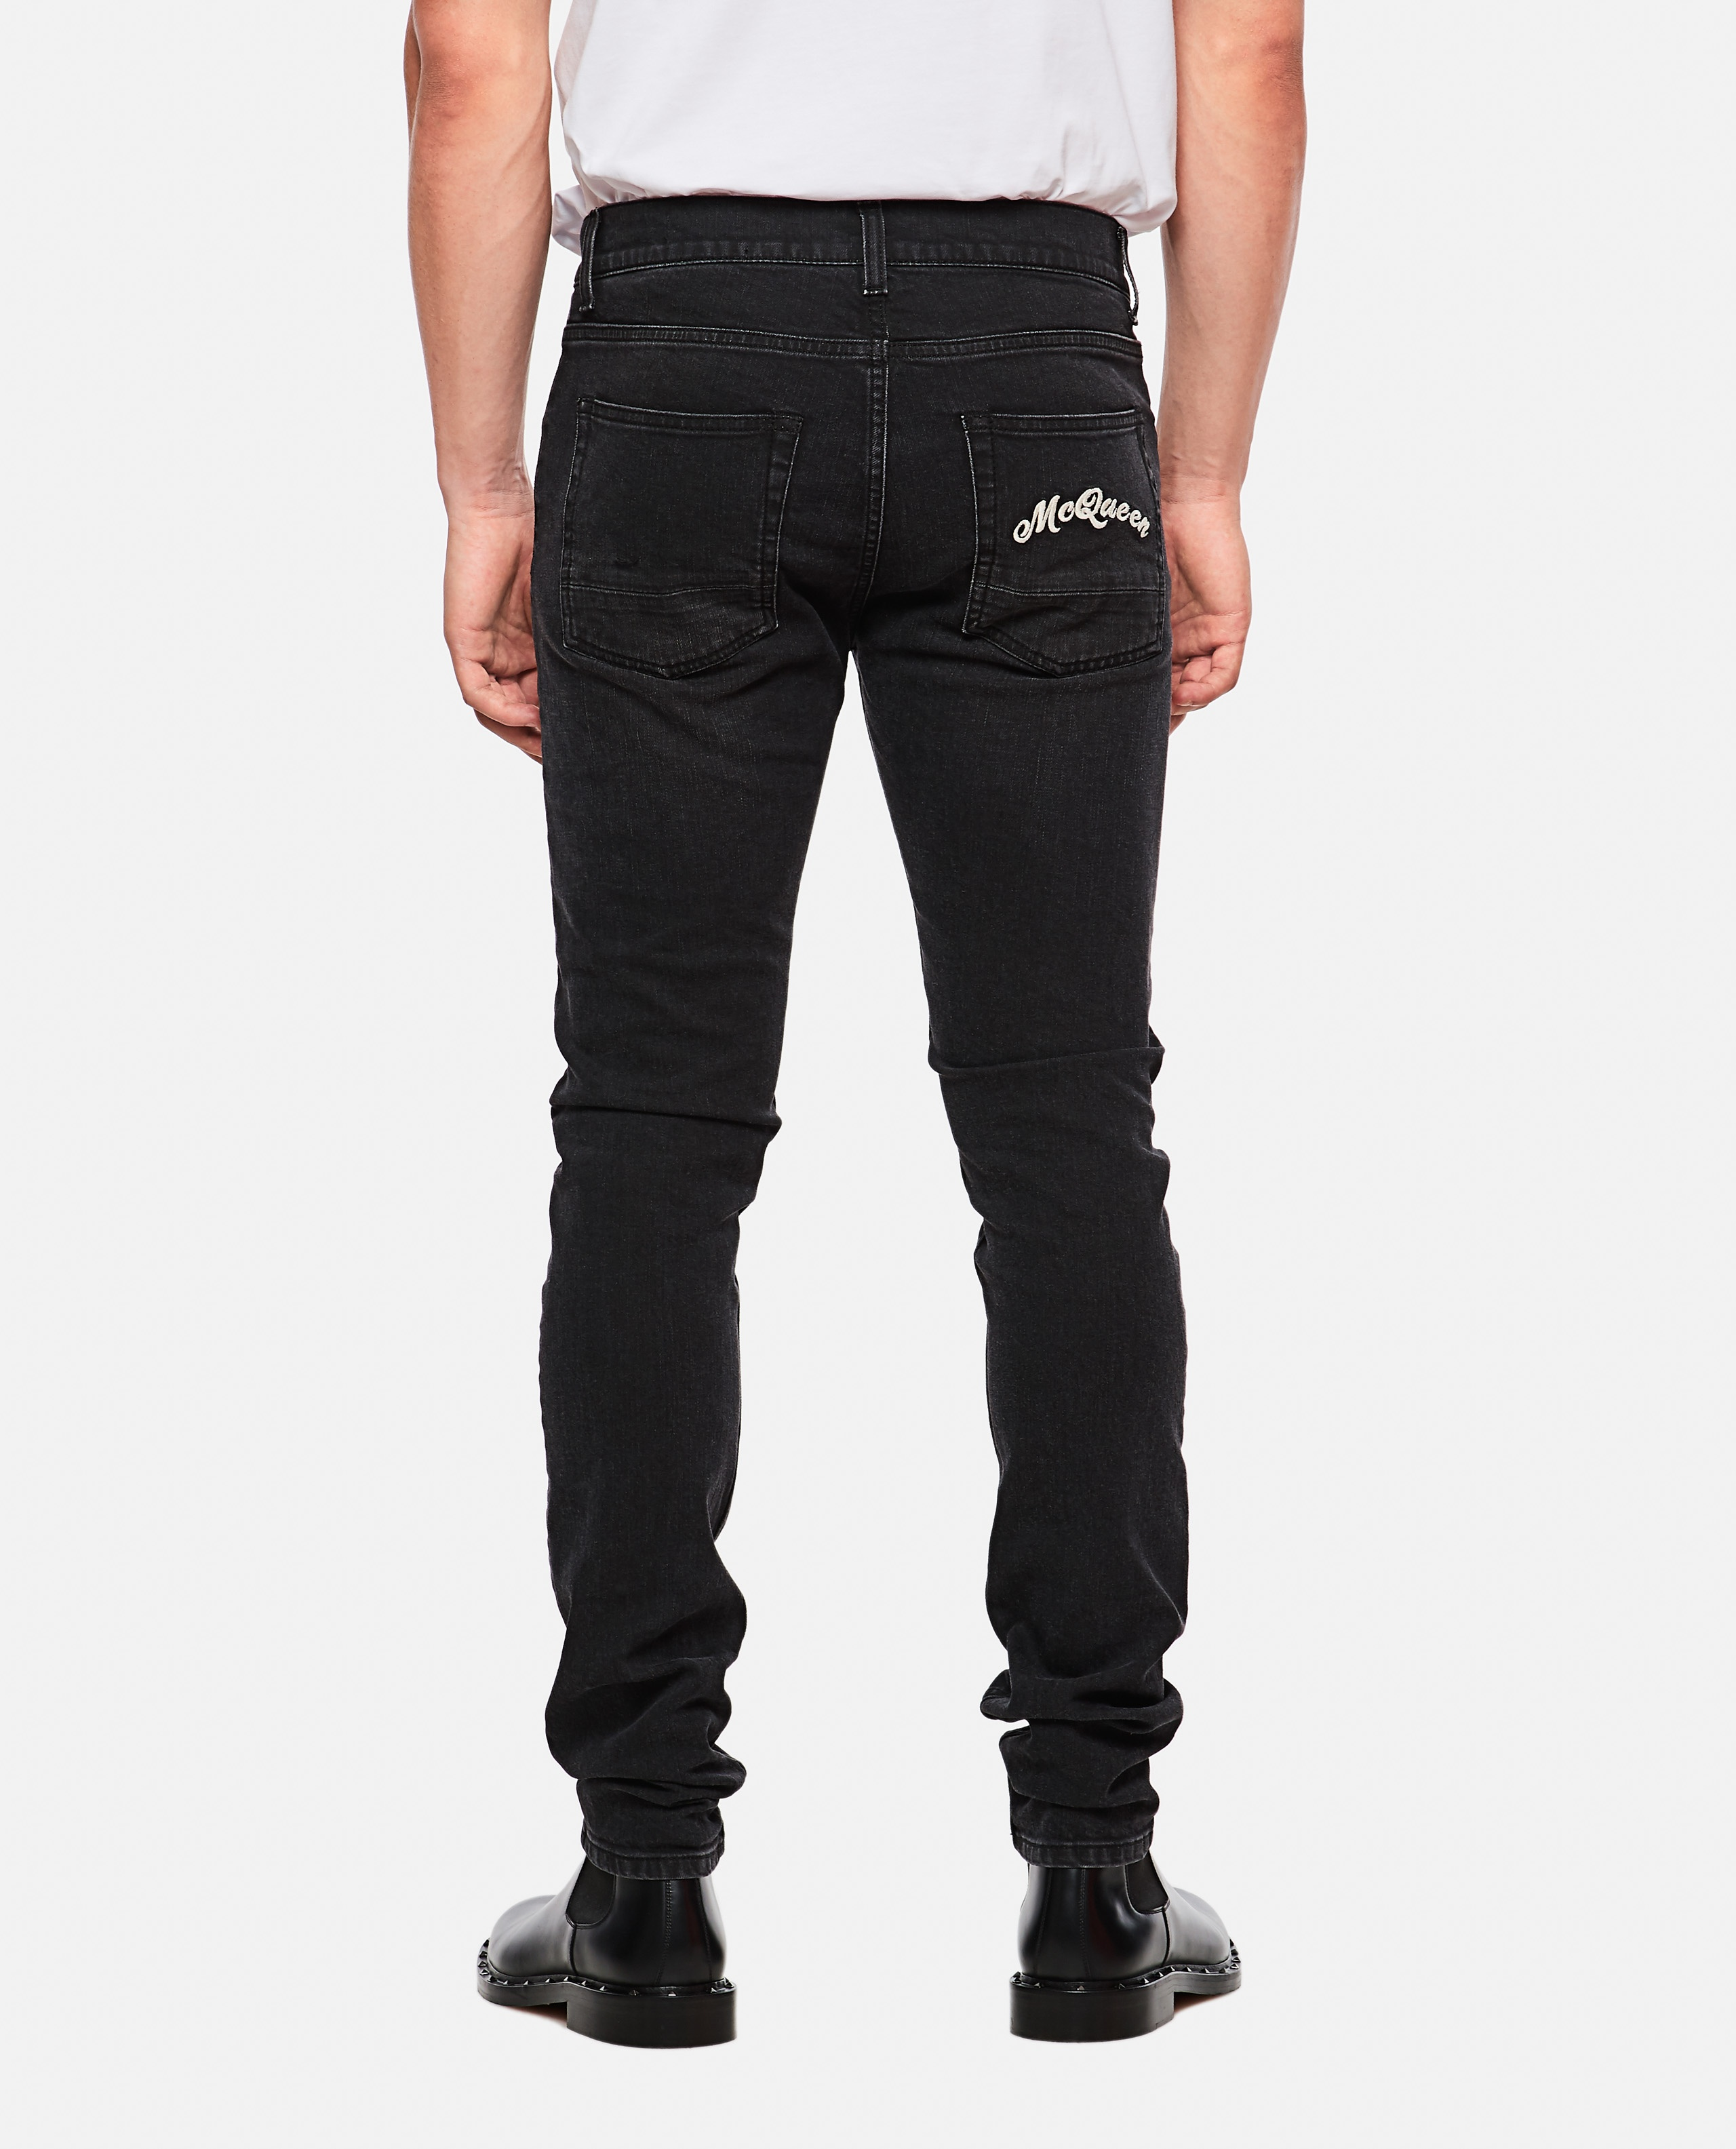 Slim fit jeans with embroidery Men Alexander McQueen 000179840026772 3